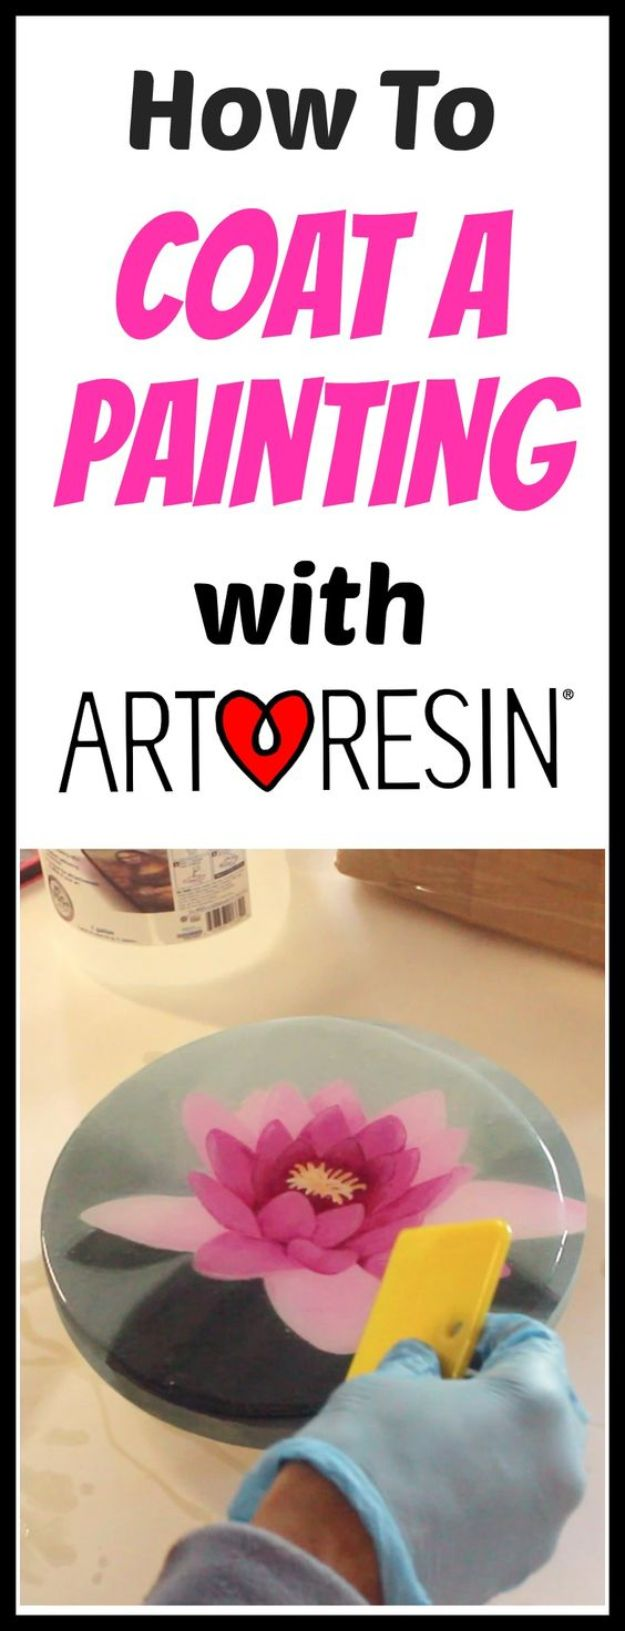 DIY Resin Casting Crafts - Coat An Acrylic Painting With Resin - Homemade Resin and Epoxy Craft Projects and Ideas - How to Make Resin Jewelry - Use Silicon Molds to Make Paper Weights, Creative Christmas Ornaments and Crafts to Make and Sell - Flowers, Pictures, Clocks, Tabletop, Inspiration for Handmade Jewelry and Items to Sell on Etsy #crafts